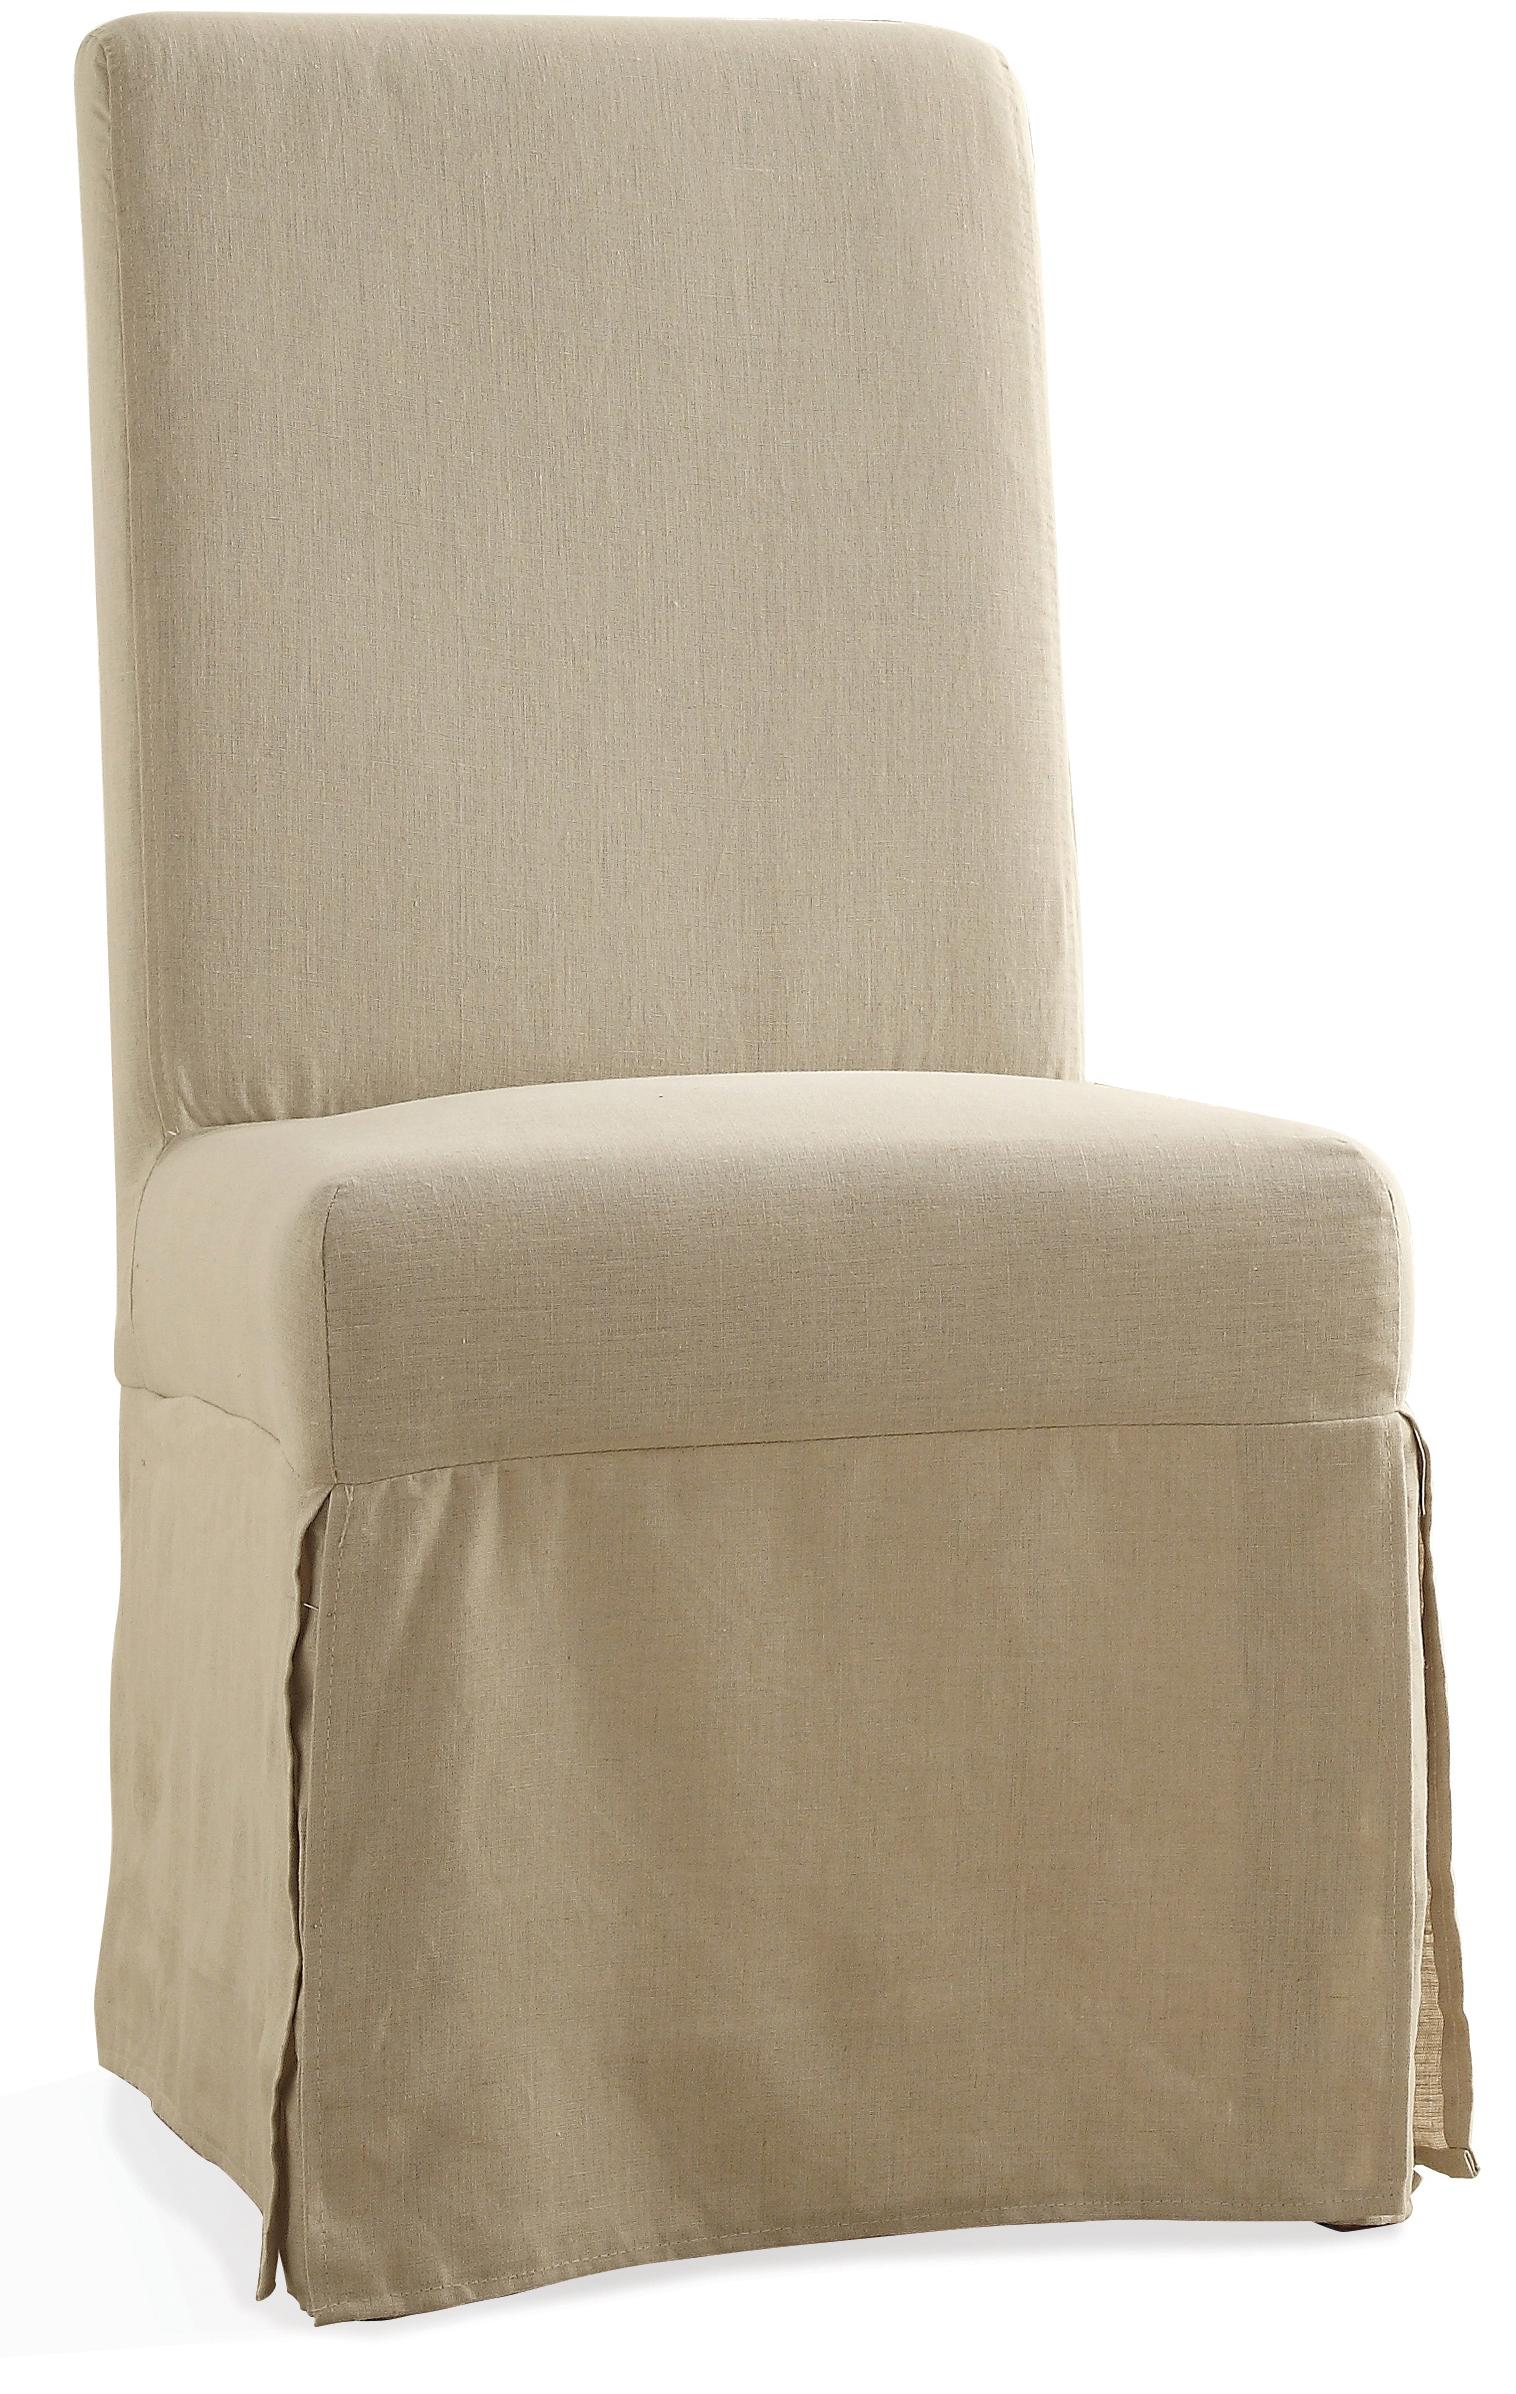 brown pattern slipcover with furniture rug grey wingback beautiful curved brings looks polished chair legs wooden slipcovers linen on mesmerizing chairs